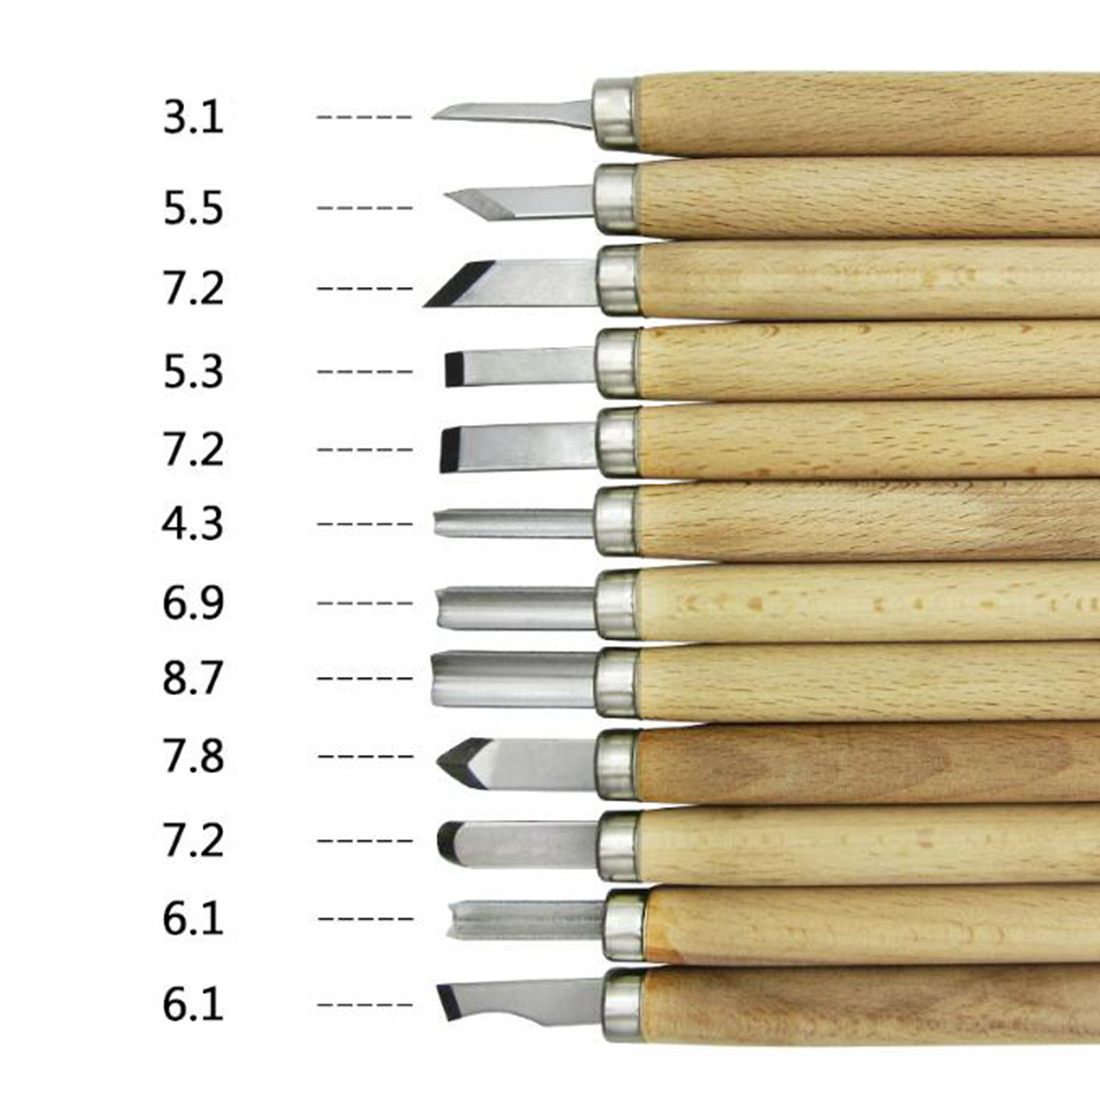 12pcs/set Hand Wood Carving Chisels Knife Tool for Basic Woodcut Working Clay Wax DIY Tools and Detailed Woodworking Hand Tools 25pcs clay tools modeling tools sculpting tools sculpture tools for pottery sculpture fondant cake decorating